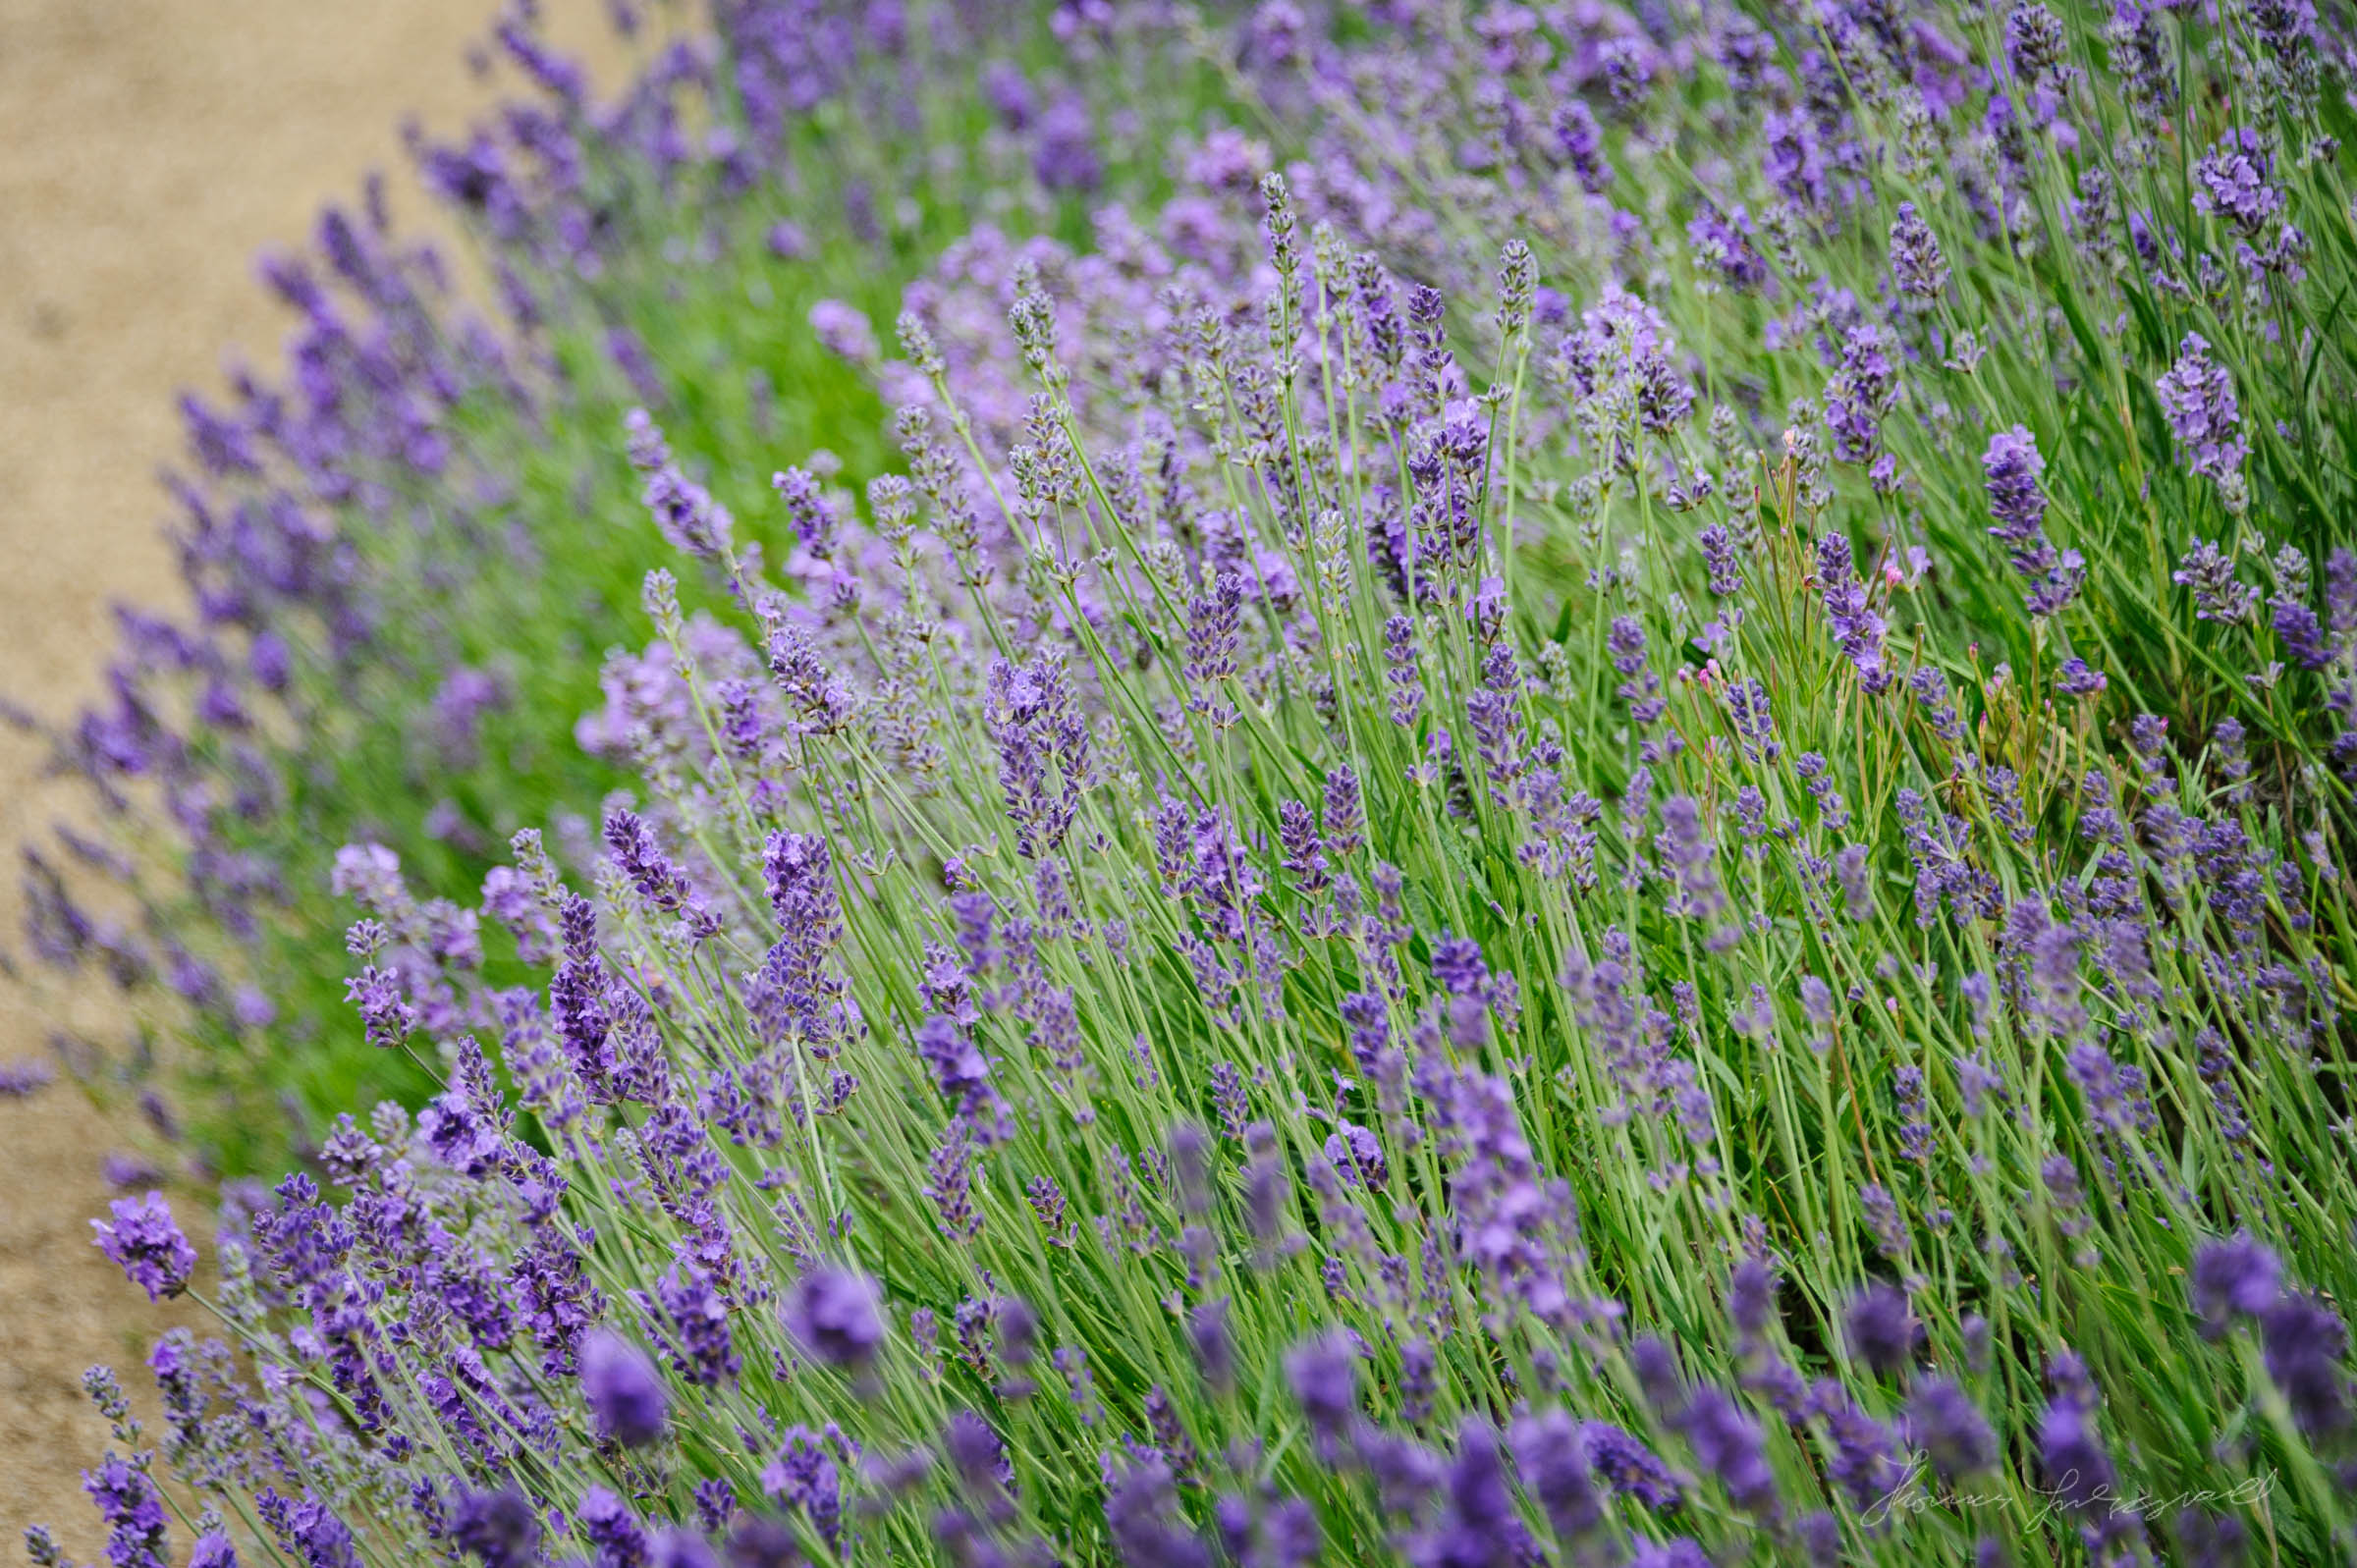 Lavender growing in a garden